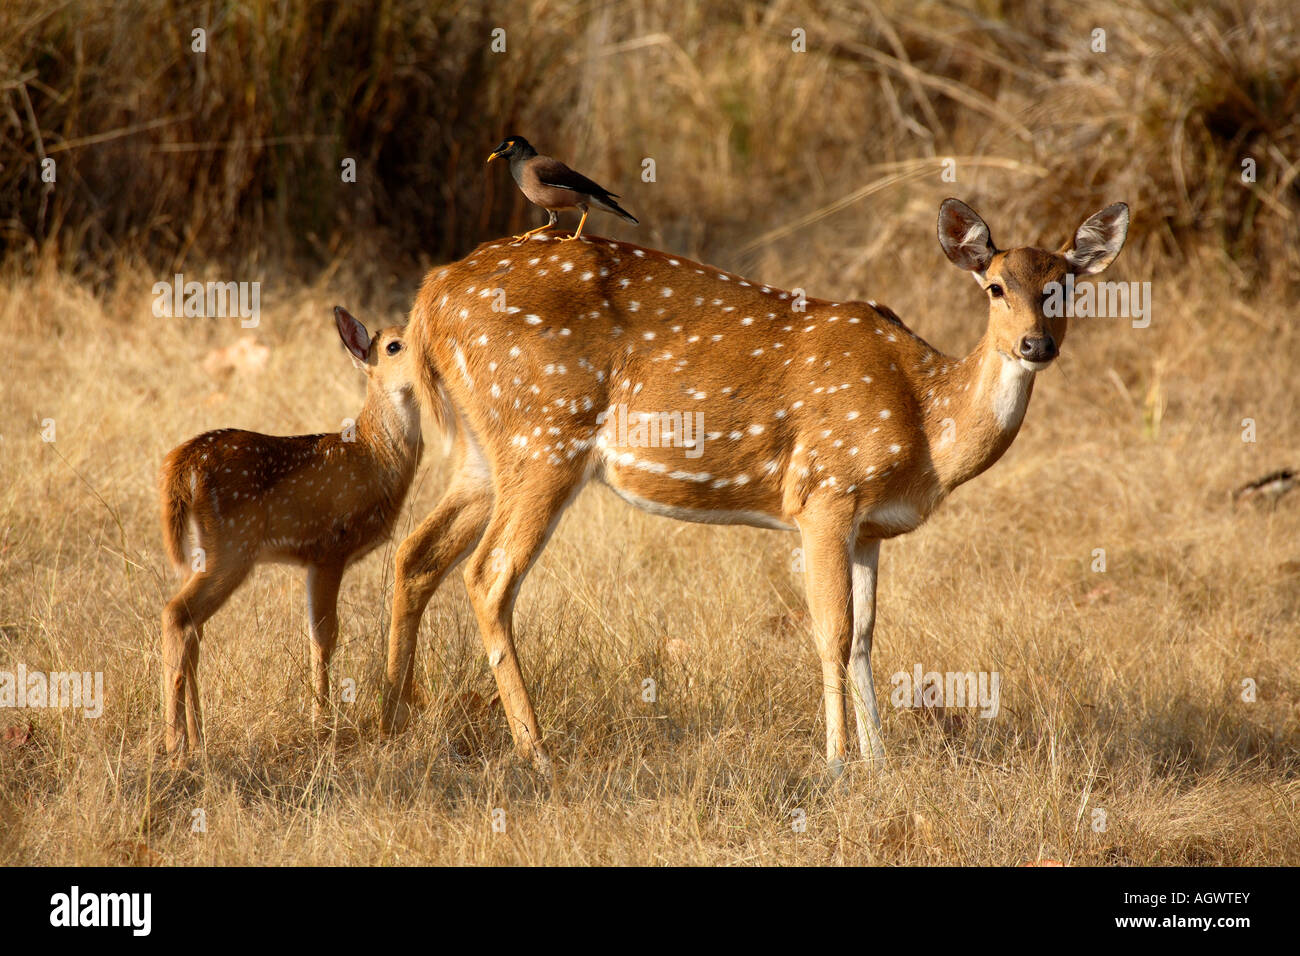 India Kanha national park kanha tiger reserve chital deer axis deer spotted deer axis axis fawn indian starling - Stock Image